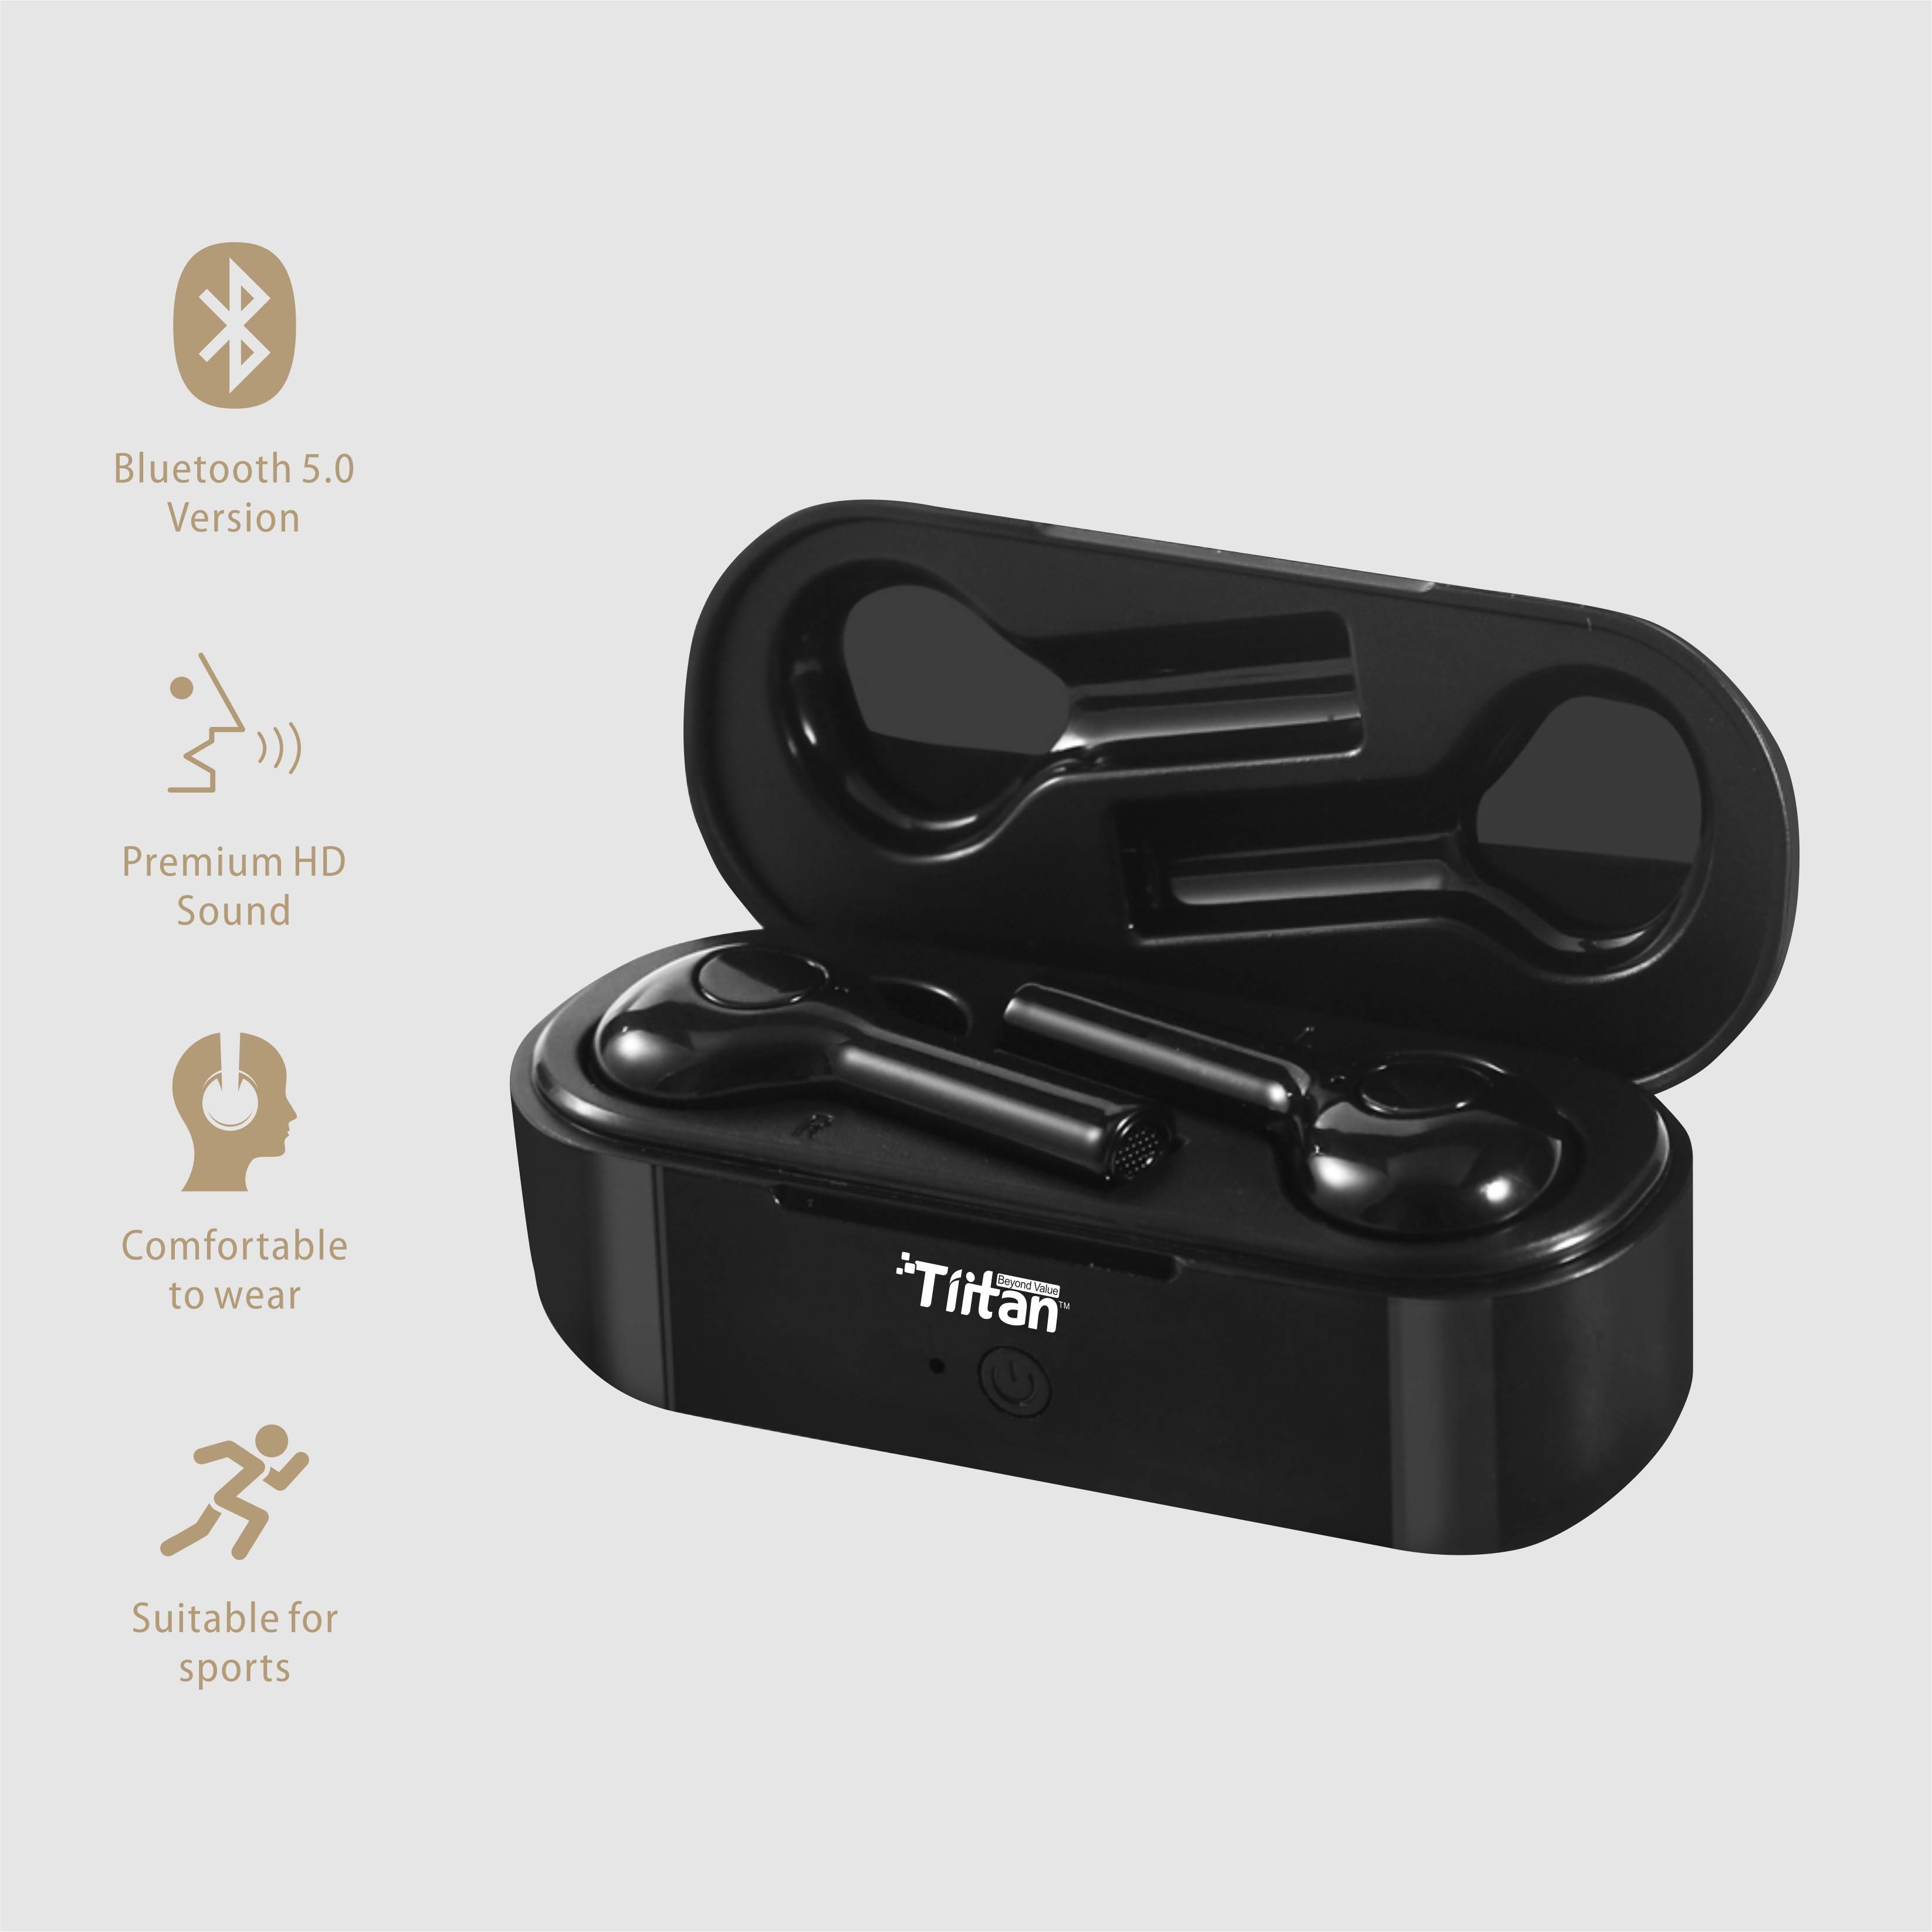 TIITAN True Wireless Earbuds (TWS), Bluetooth 5.0, Hi-Fi Sound, 7 Hours Music Time, 10-Meter Range Earbuds, 50mAh*2 Battery, Portable 500mAh Charging Box, Handsfree Wireless Earphones/TW-X6